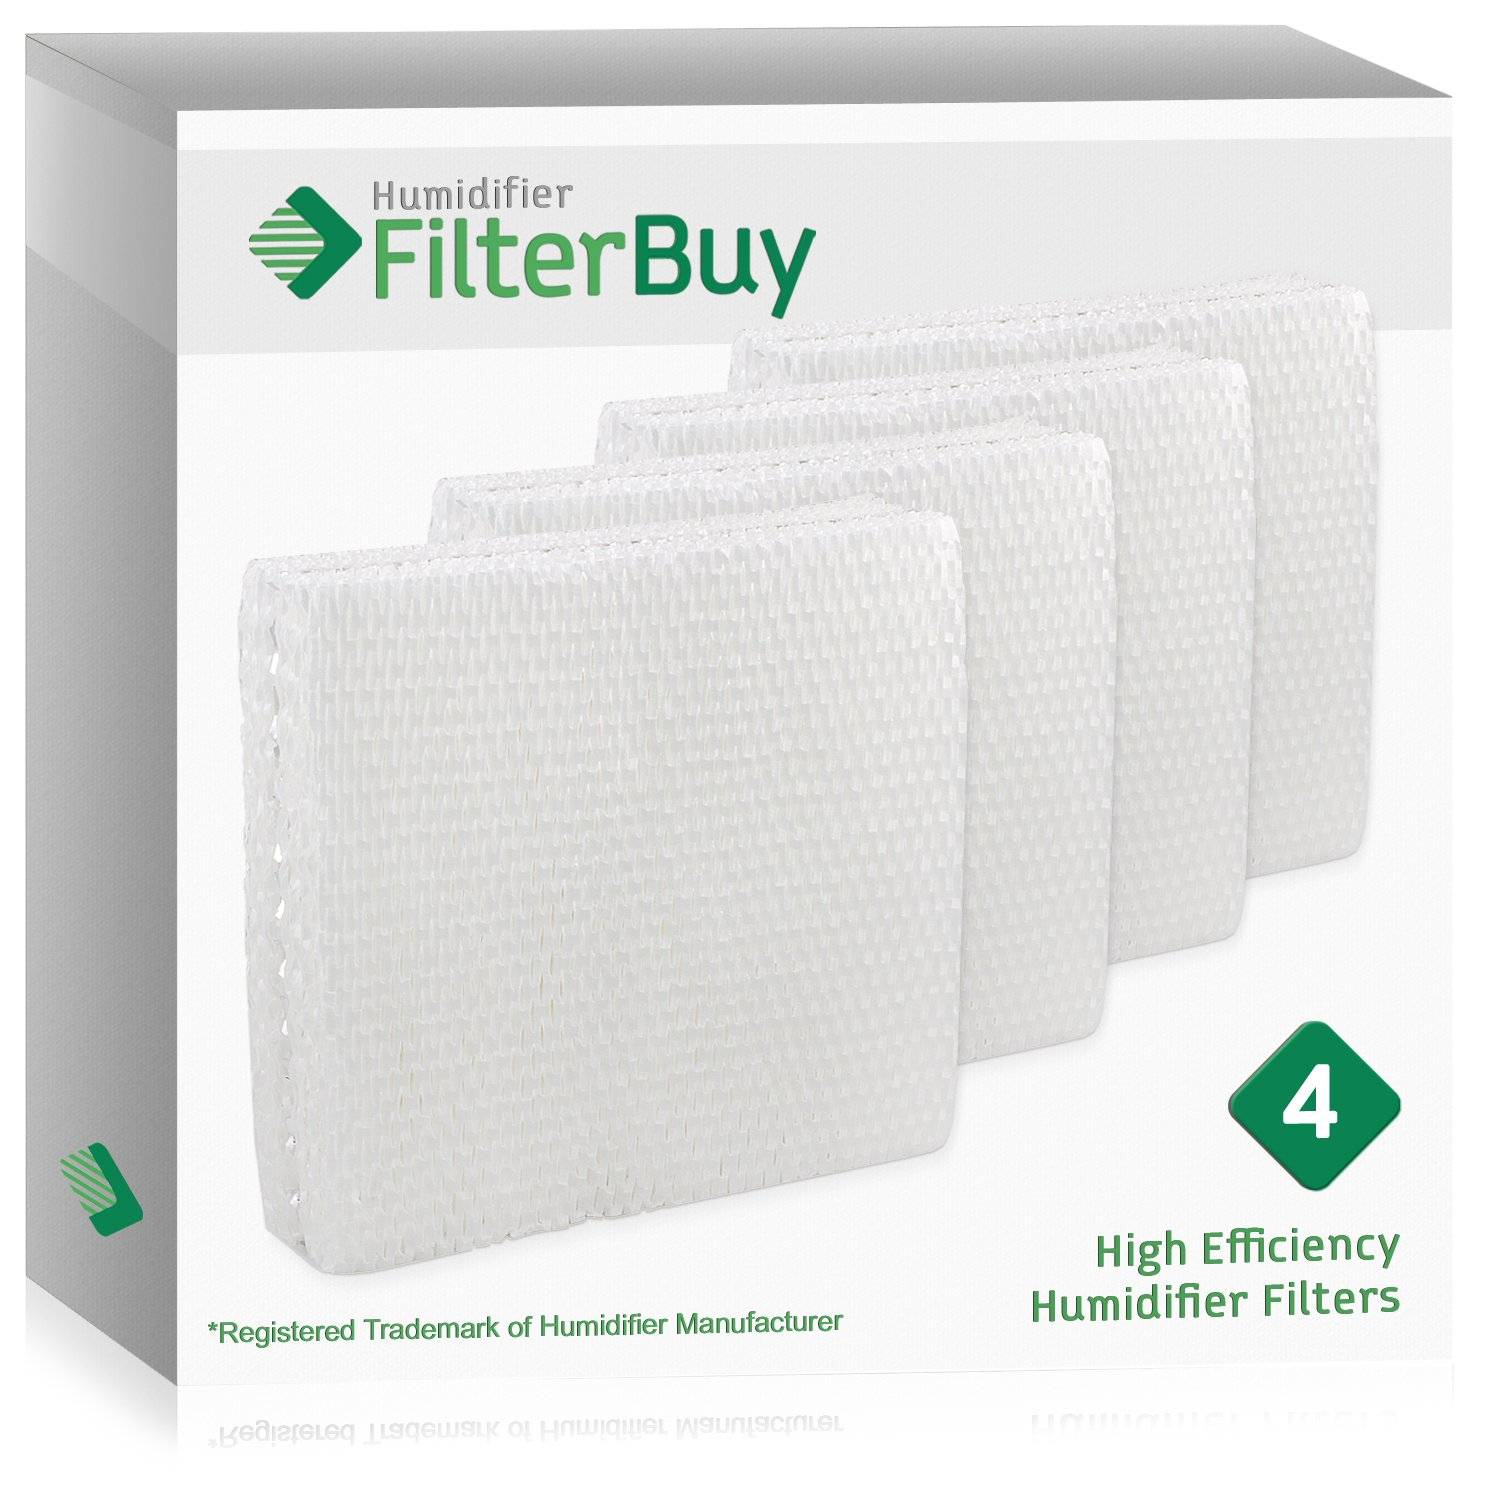 FilterBuy 4 Replacements Compatible with Lasko THF15, Duracraft AC-809 & AC-815, Sears Kenmore 14809 Humidifier Wick Filters. Designed by in the USA.